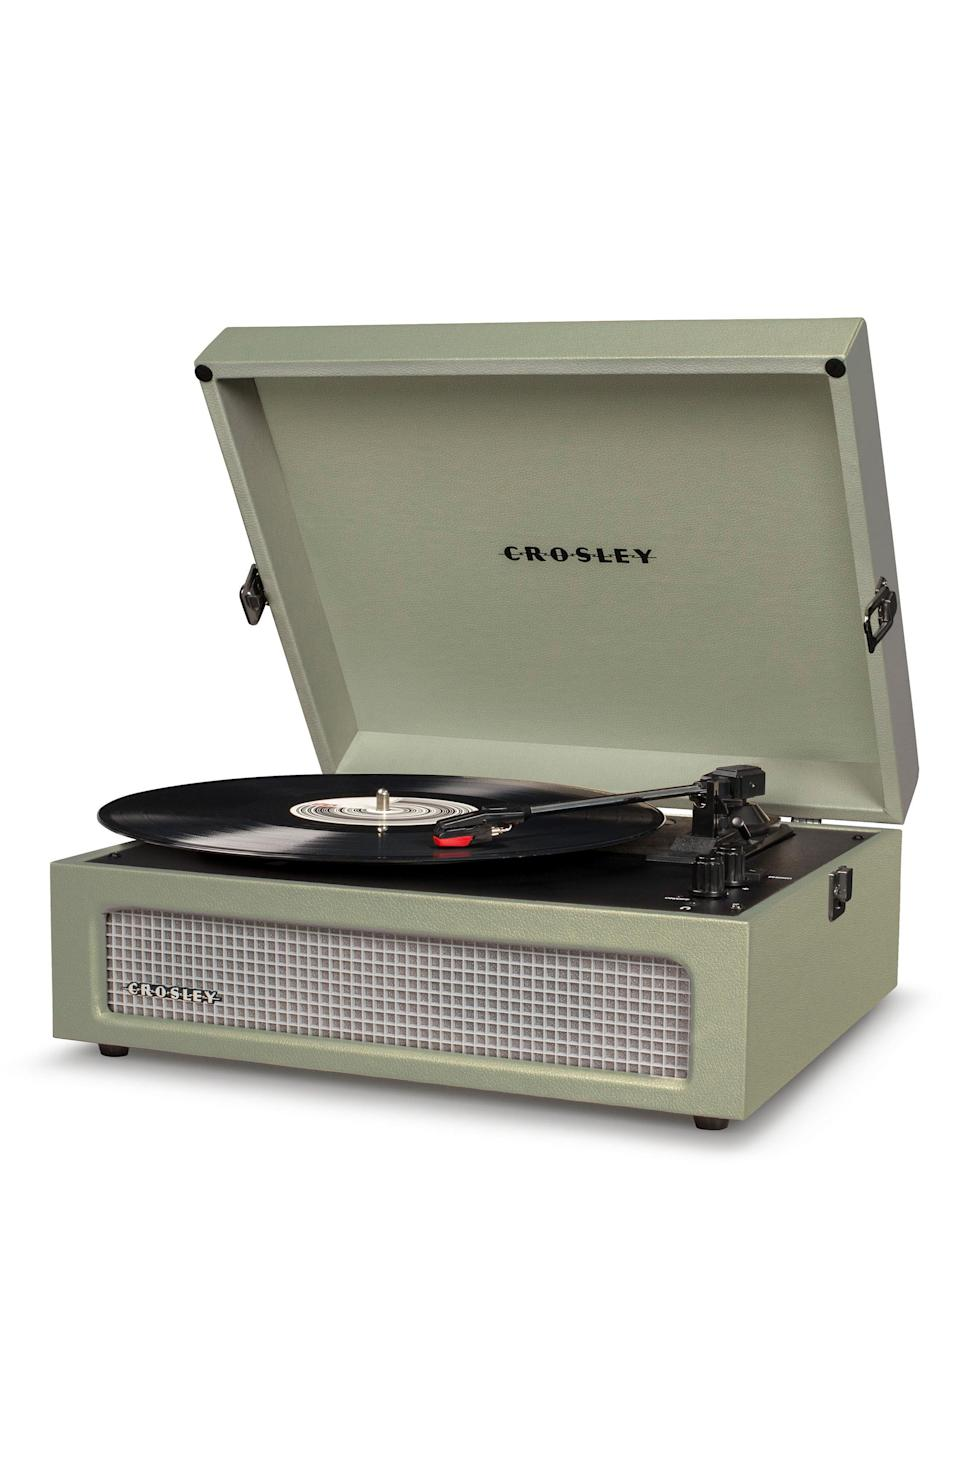 "<p><strong>Crosley Radio </strong></p><p>nordstrom.com</p><p><strong>$90.00</strong></p><p><a href=""https://go.redirectingat.com?id=74968X1596630&url=https%3A%2F%2Fshop.nordstrom.com%2Fs%2Fcrosley-radio-voyager-turntable%2F5279015&sref=https%3A%2F%2Fwww.harpersbazaar.com%2Ffashion%2Ftrends%2Fg4473%2Fmens-holiday-gift-guide%2F"" rel=""nofollow noopener"" target=""_blank"" data-ylk=""slk:Shop Now"" class=""link rapid-noclick-resp"">Shop Now</a></p><p>For the old soul kind of man, this record player is ideal for his vinyl collection—and also makes for a cool home decor piece. </p>"